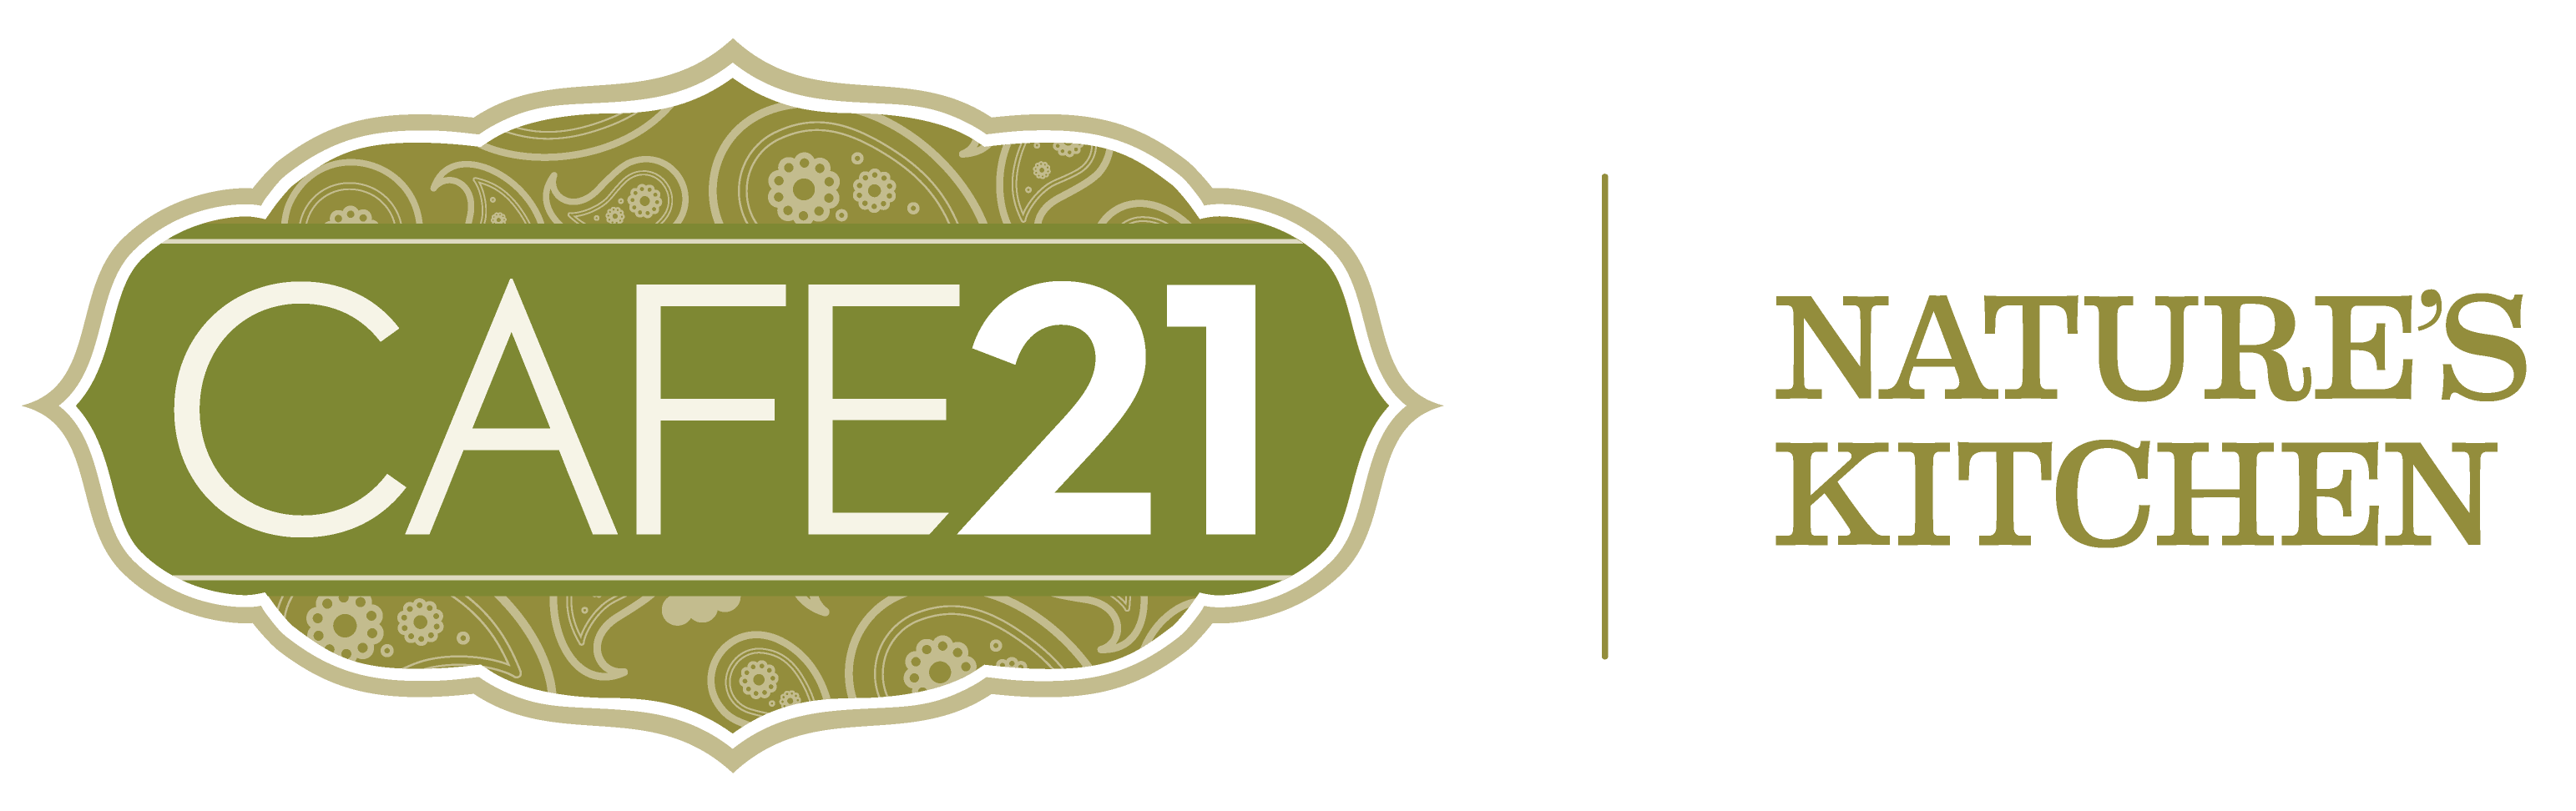 Cafe21 3301x2551 Green Gold- Logo